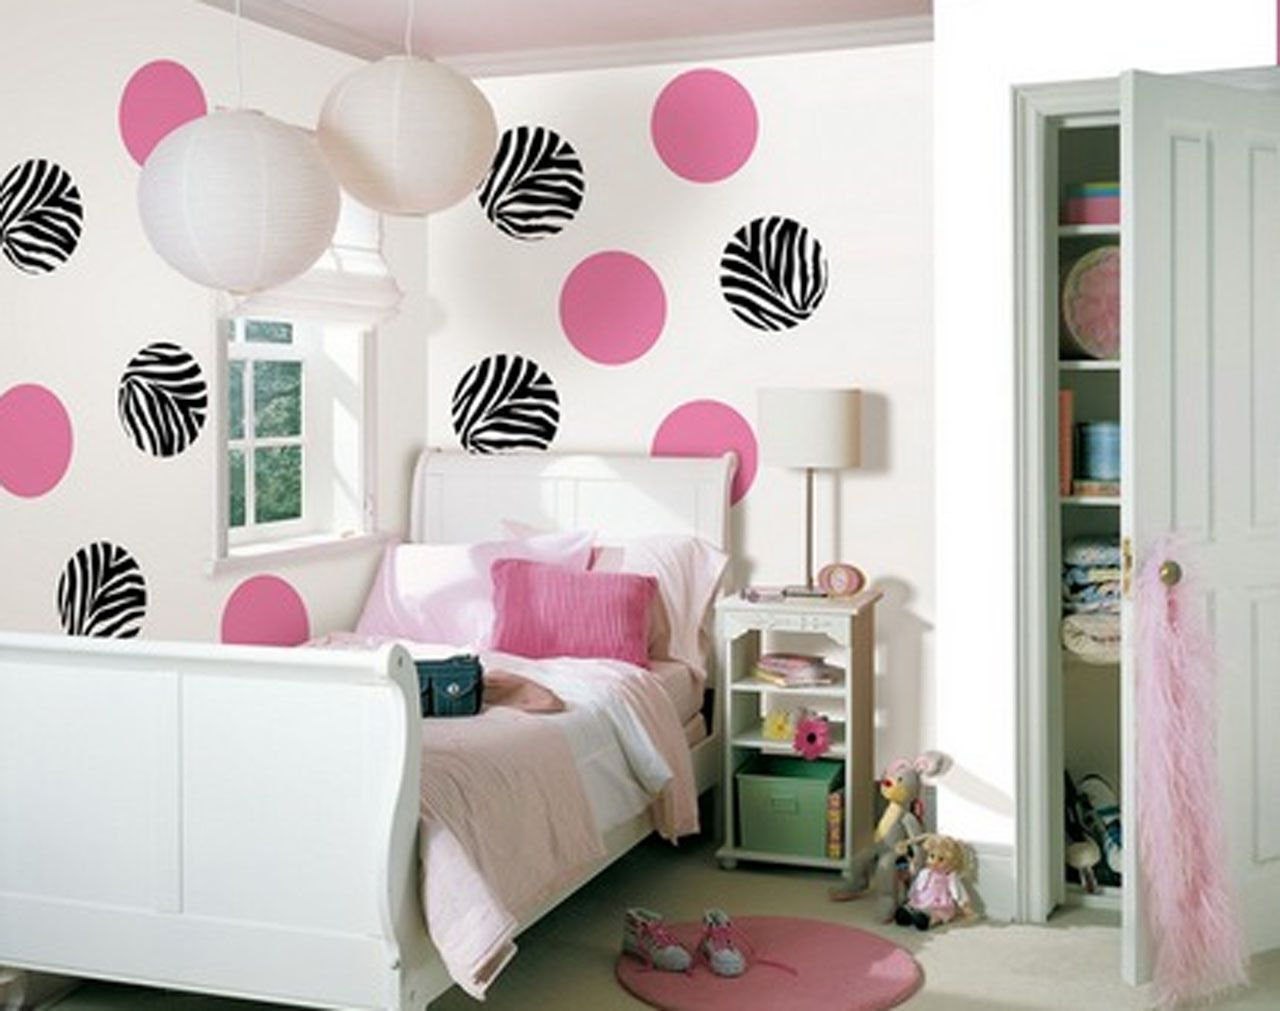 Create A Fun Zebra Print Look In A Girls Room With This Wall Pops Wall  Decals Kit. This Kit Contains Eight Go Wild Zebra Dots And Ten Flirt Pink  Dots That ...